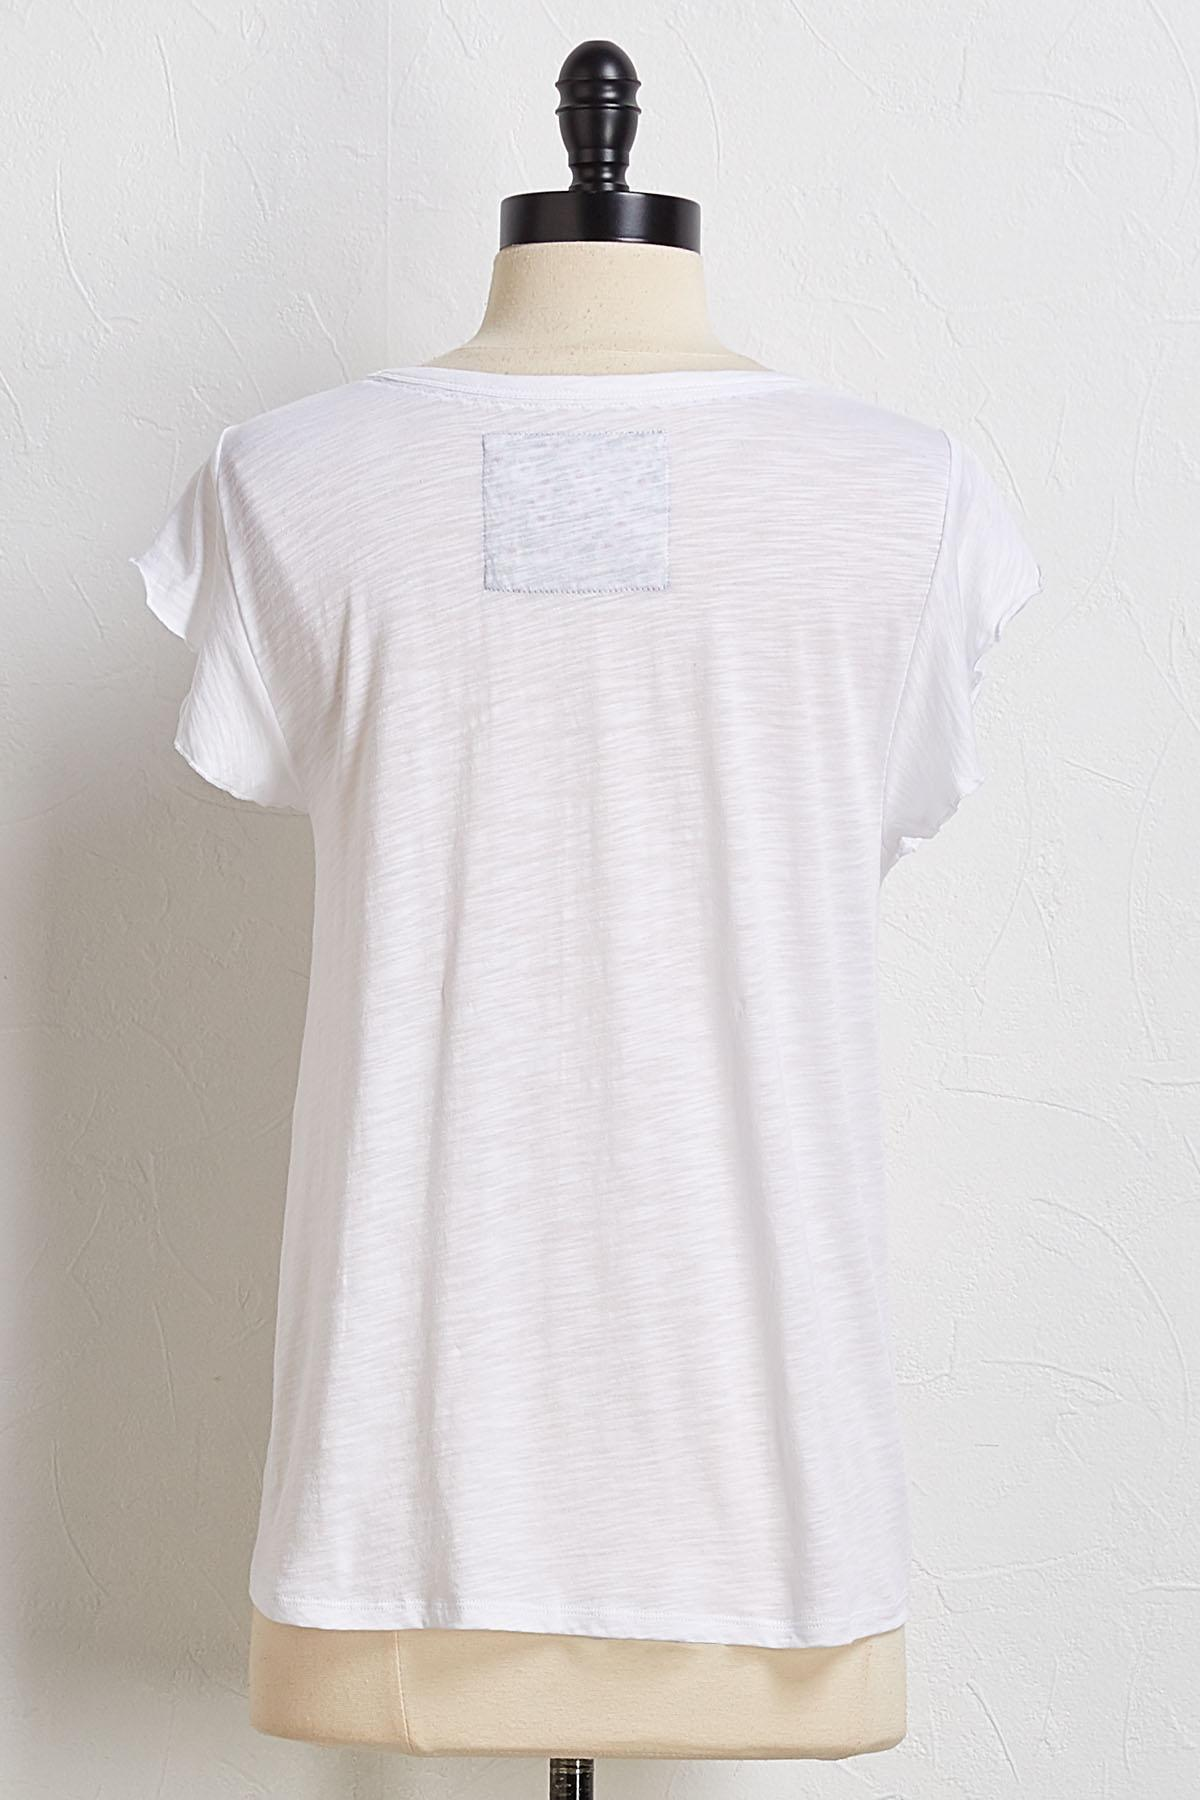 Knot Another White Tee